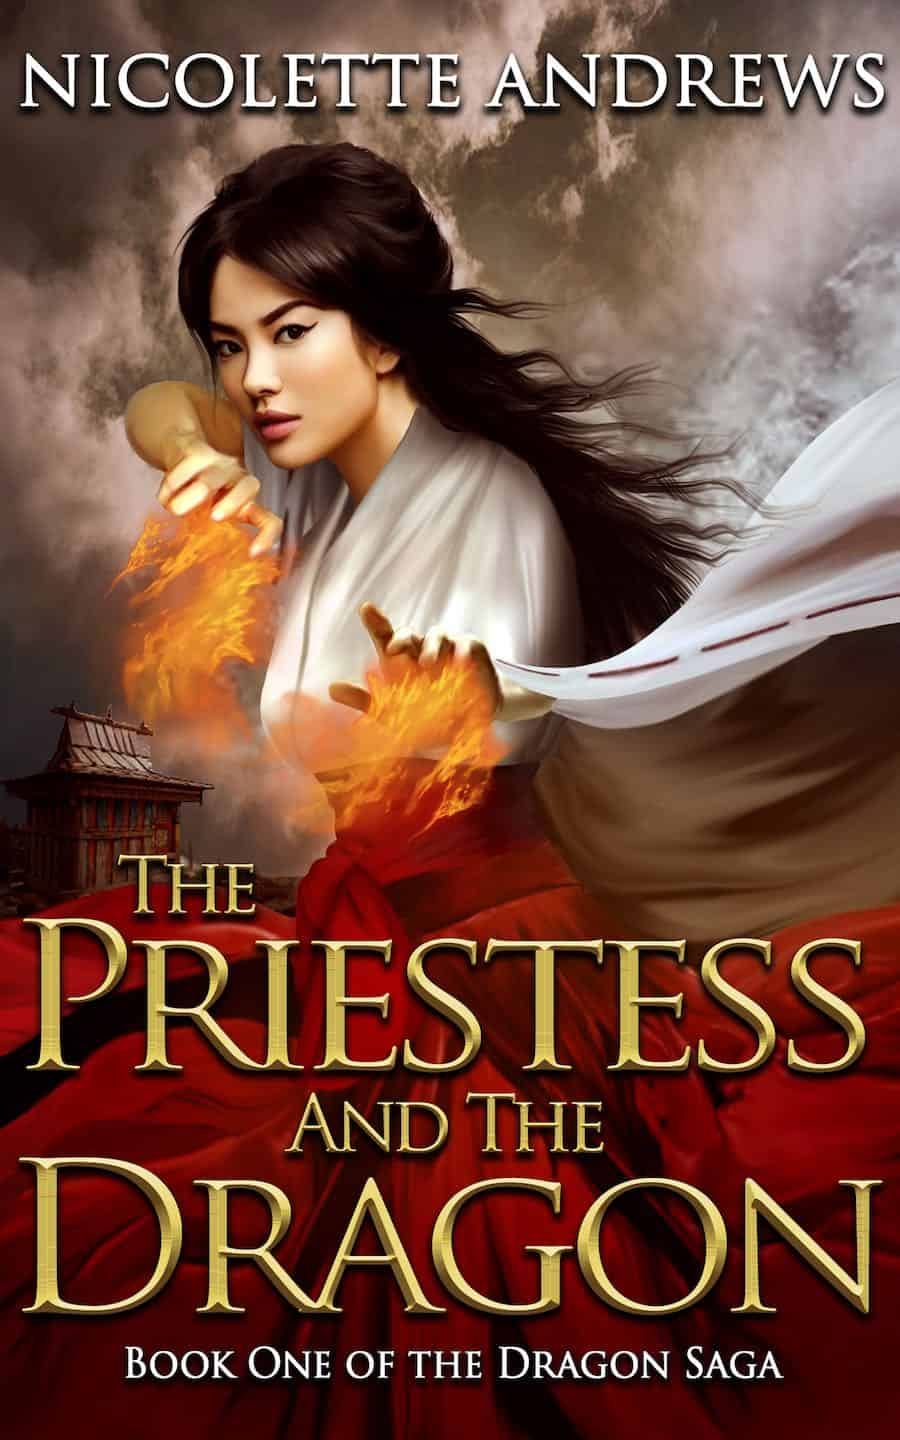 Check out this Japan-inspired fantasy, THE PRIESTESS AND THE DRAGON, from Nicolette Andrews.